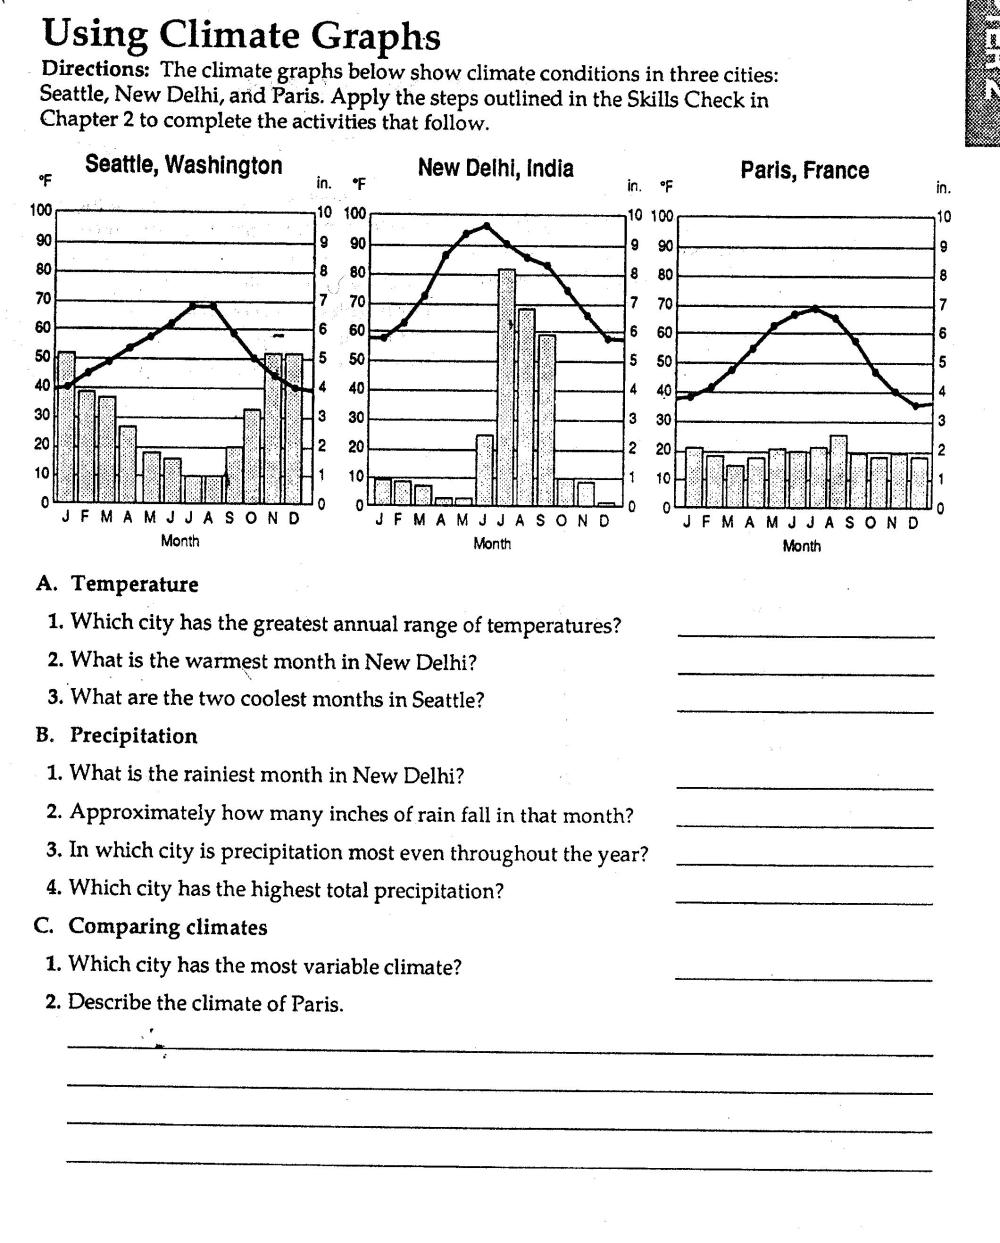 medium resolution of Type Of Climates Worksheet   Printable Worksheets and Activities for  Teachers